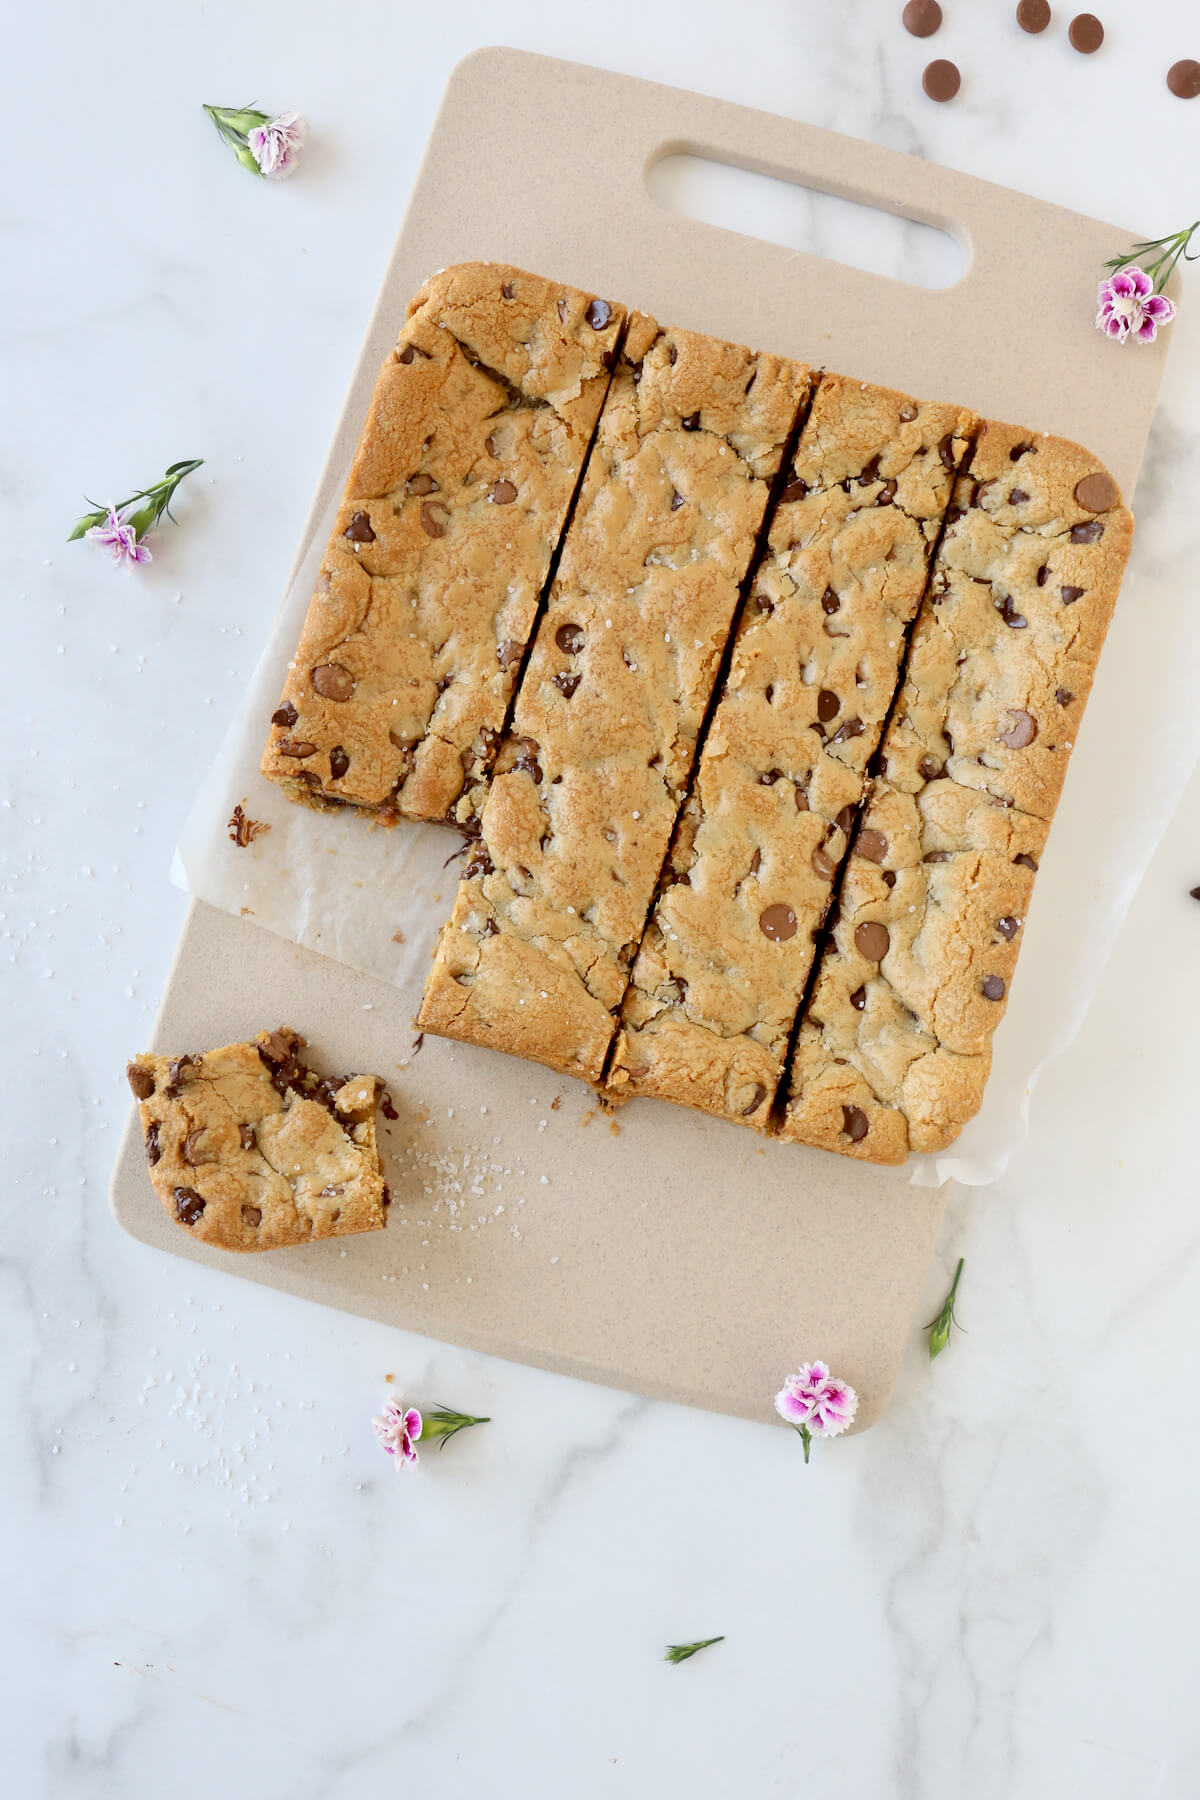 A square pan of blondies cut into smaller squares.